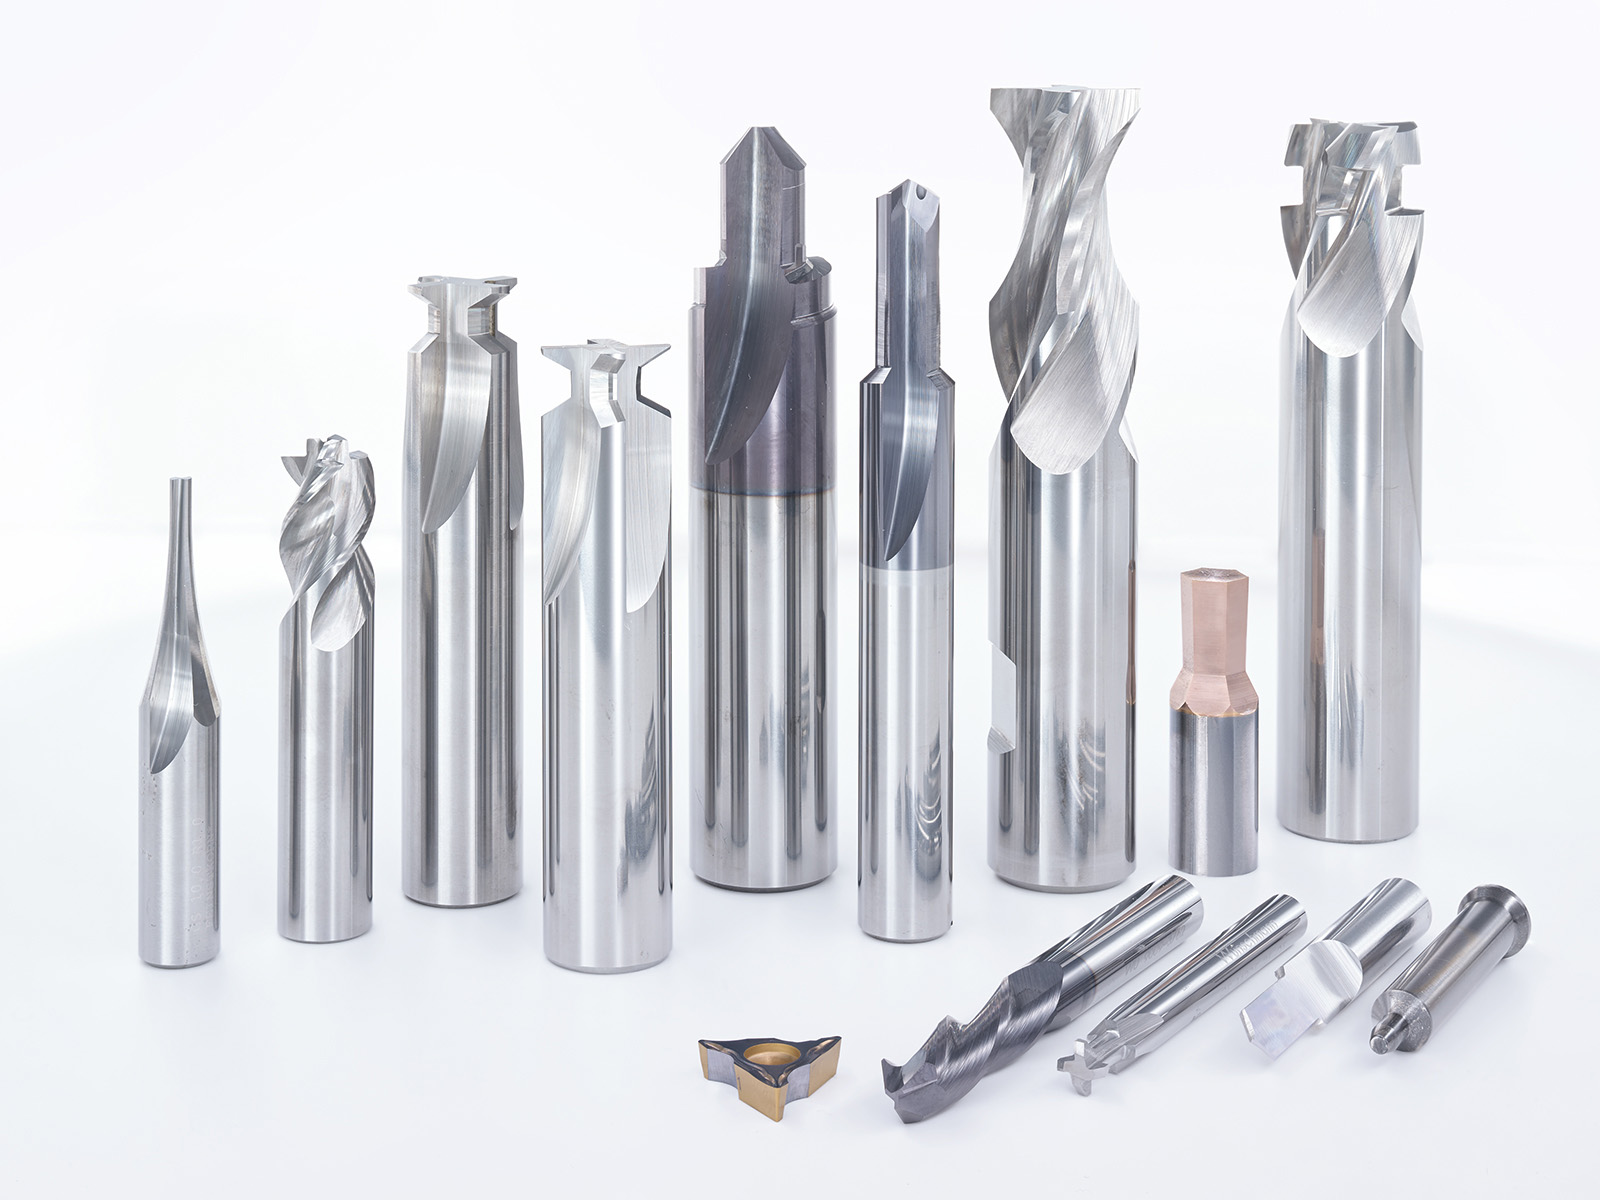 Wunschmann custom tools for machining